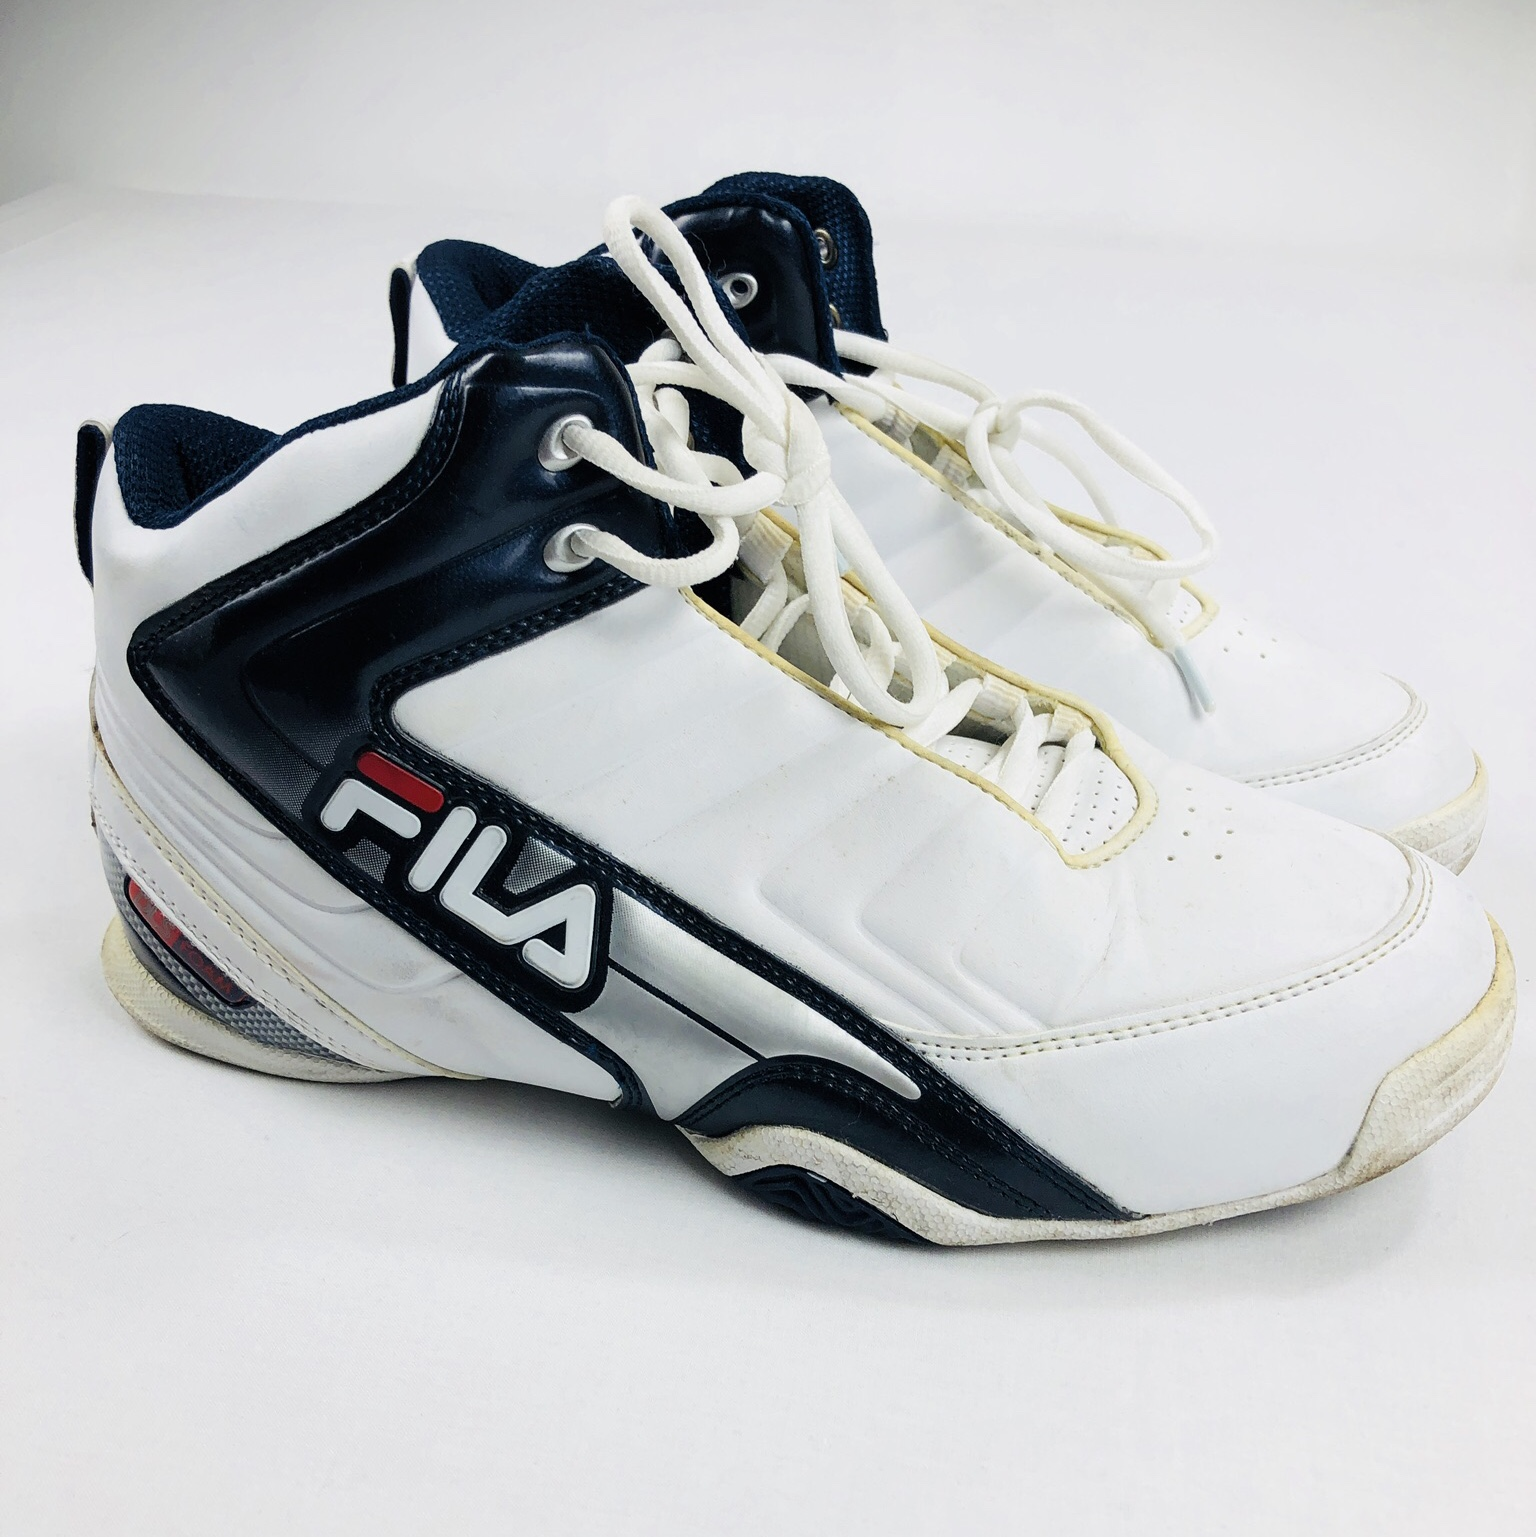 Retro FILA basketball trainers in great condition Depop